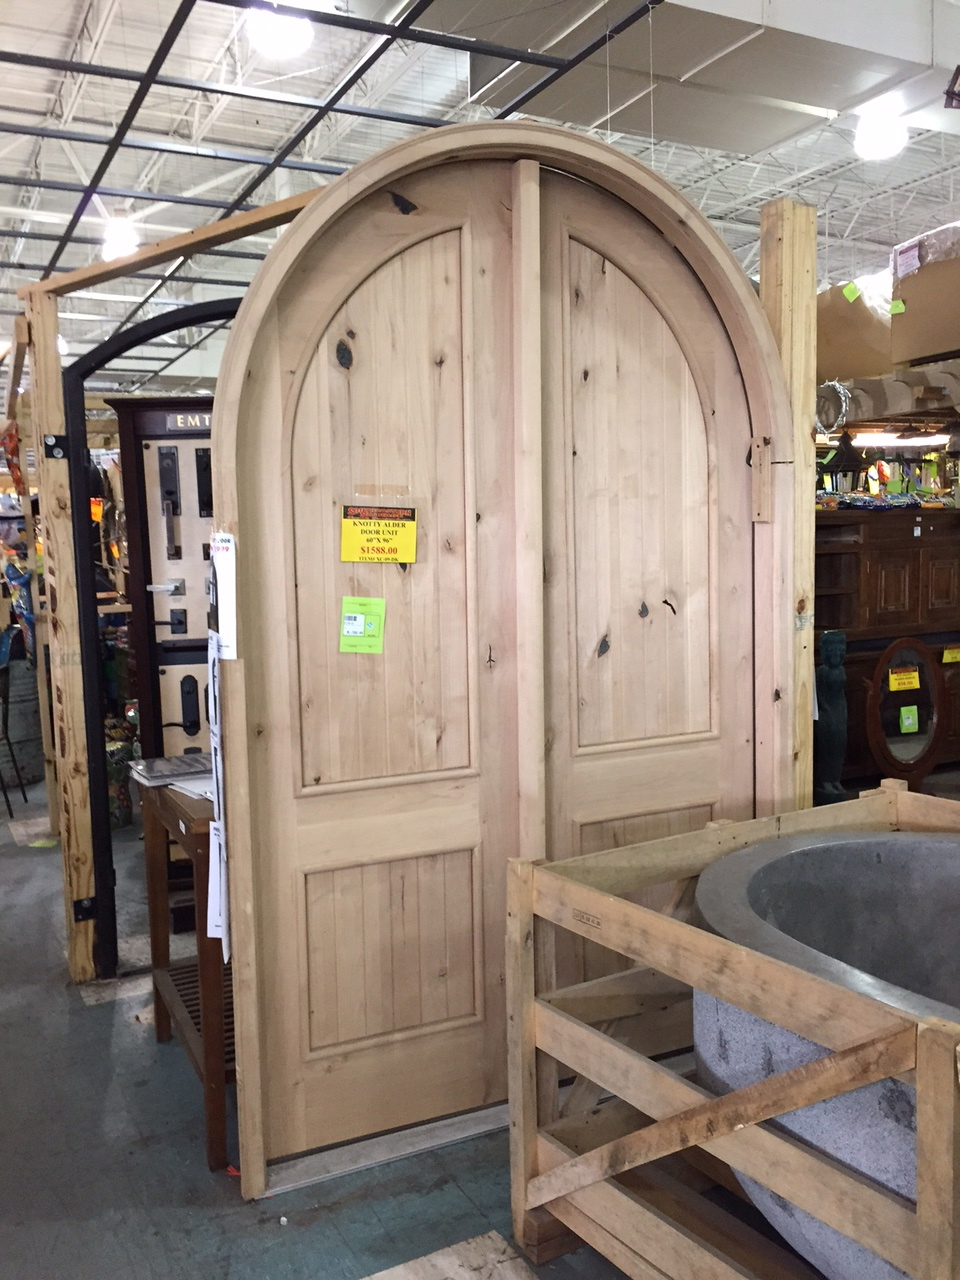 yu0027all....the price on this door was 1500.00....thatu0027s oh about 3000 less than you would get it somewhere else. & Kendall Boggs Fine Arts and Crafts: Yu0027all....Southeastern Salvage...